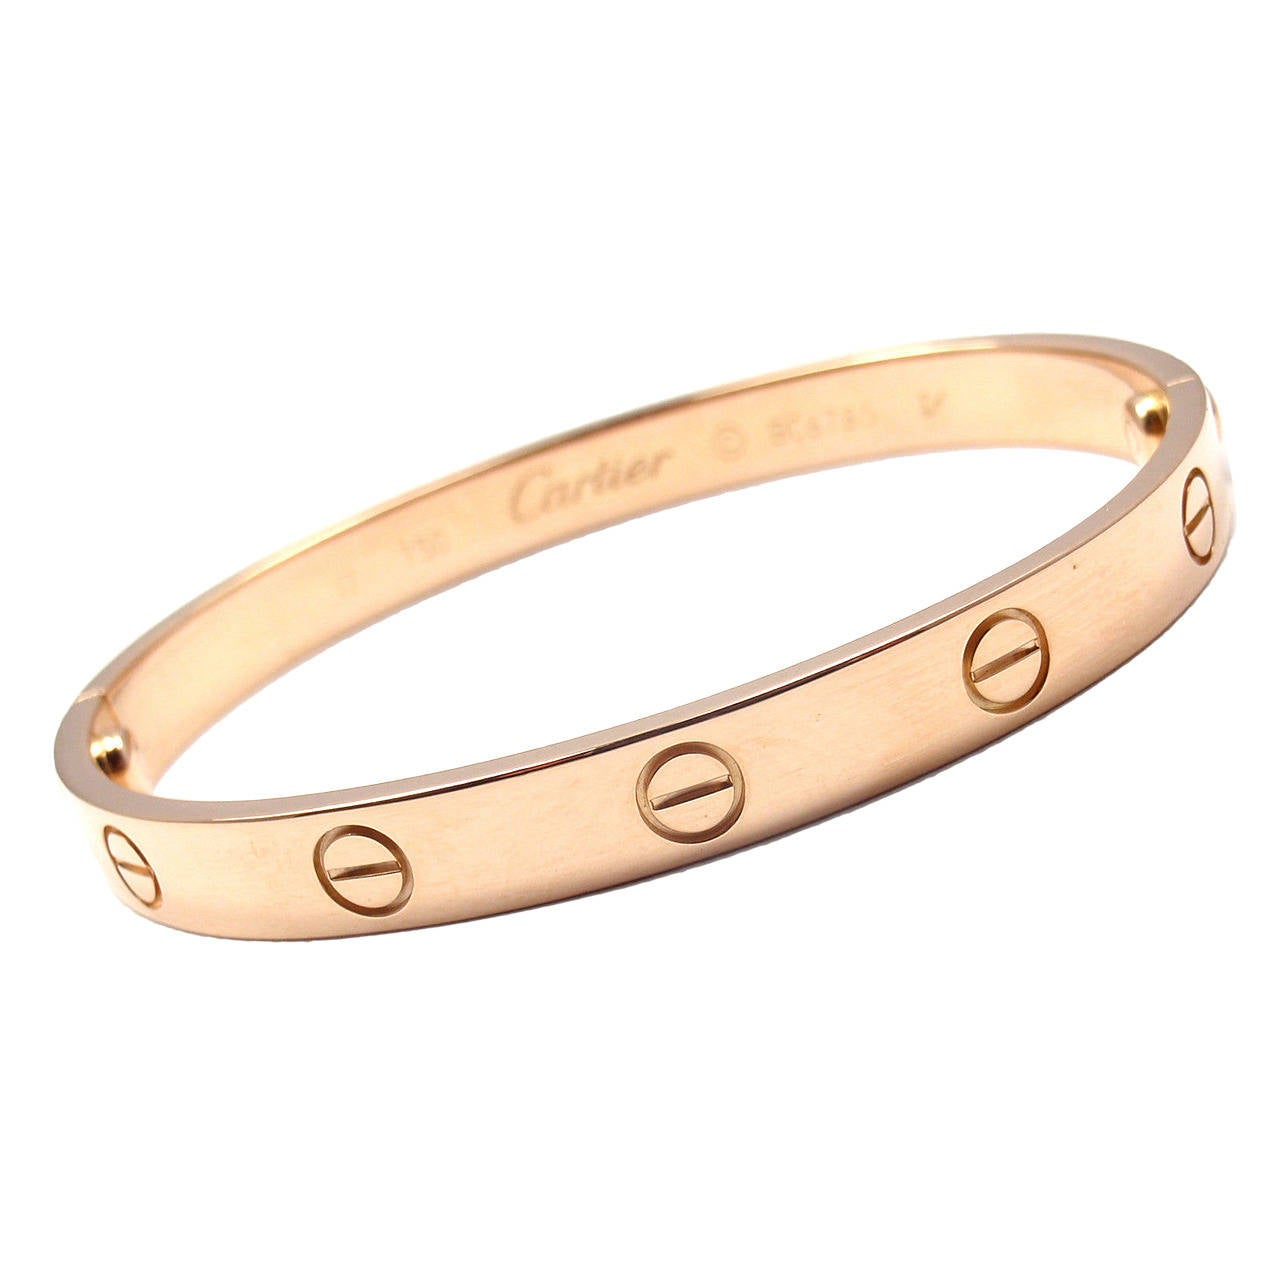 gold bangles happiness minimalist boutique style en rose bracelet bangle bracelets